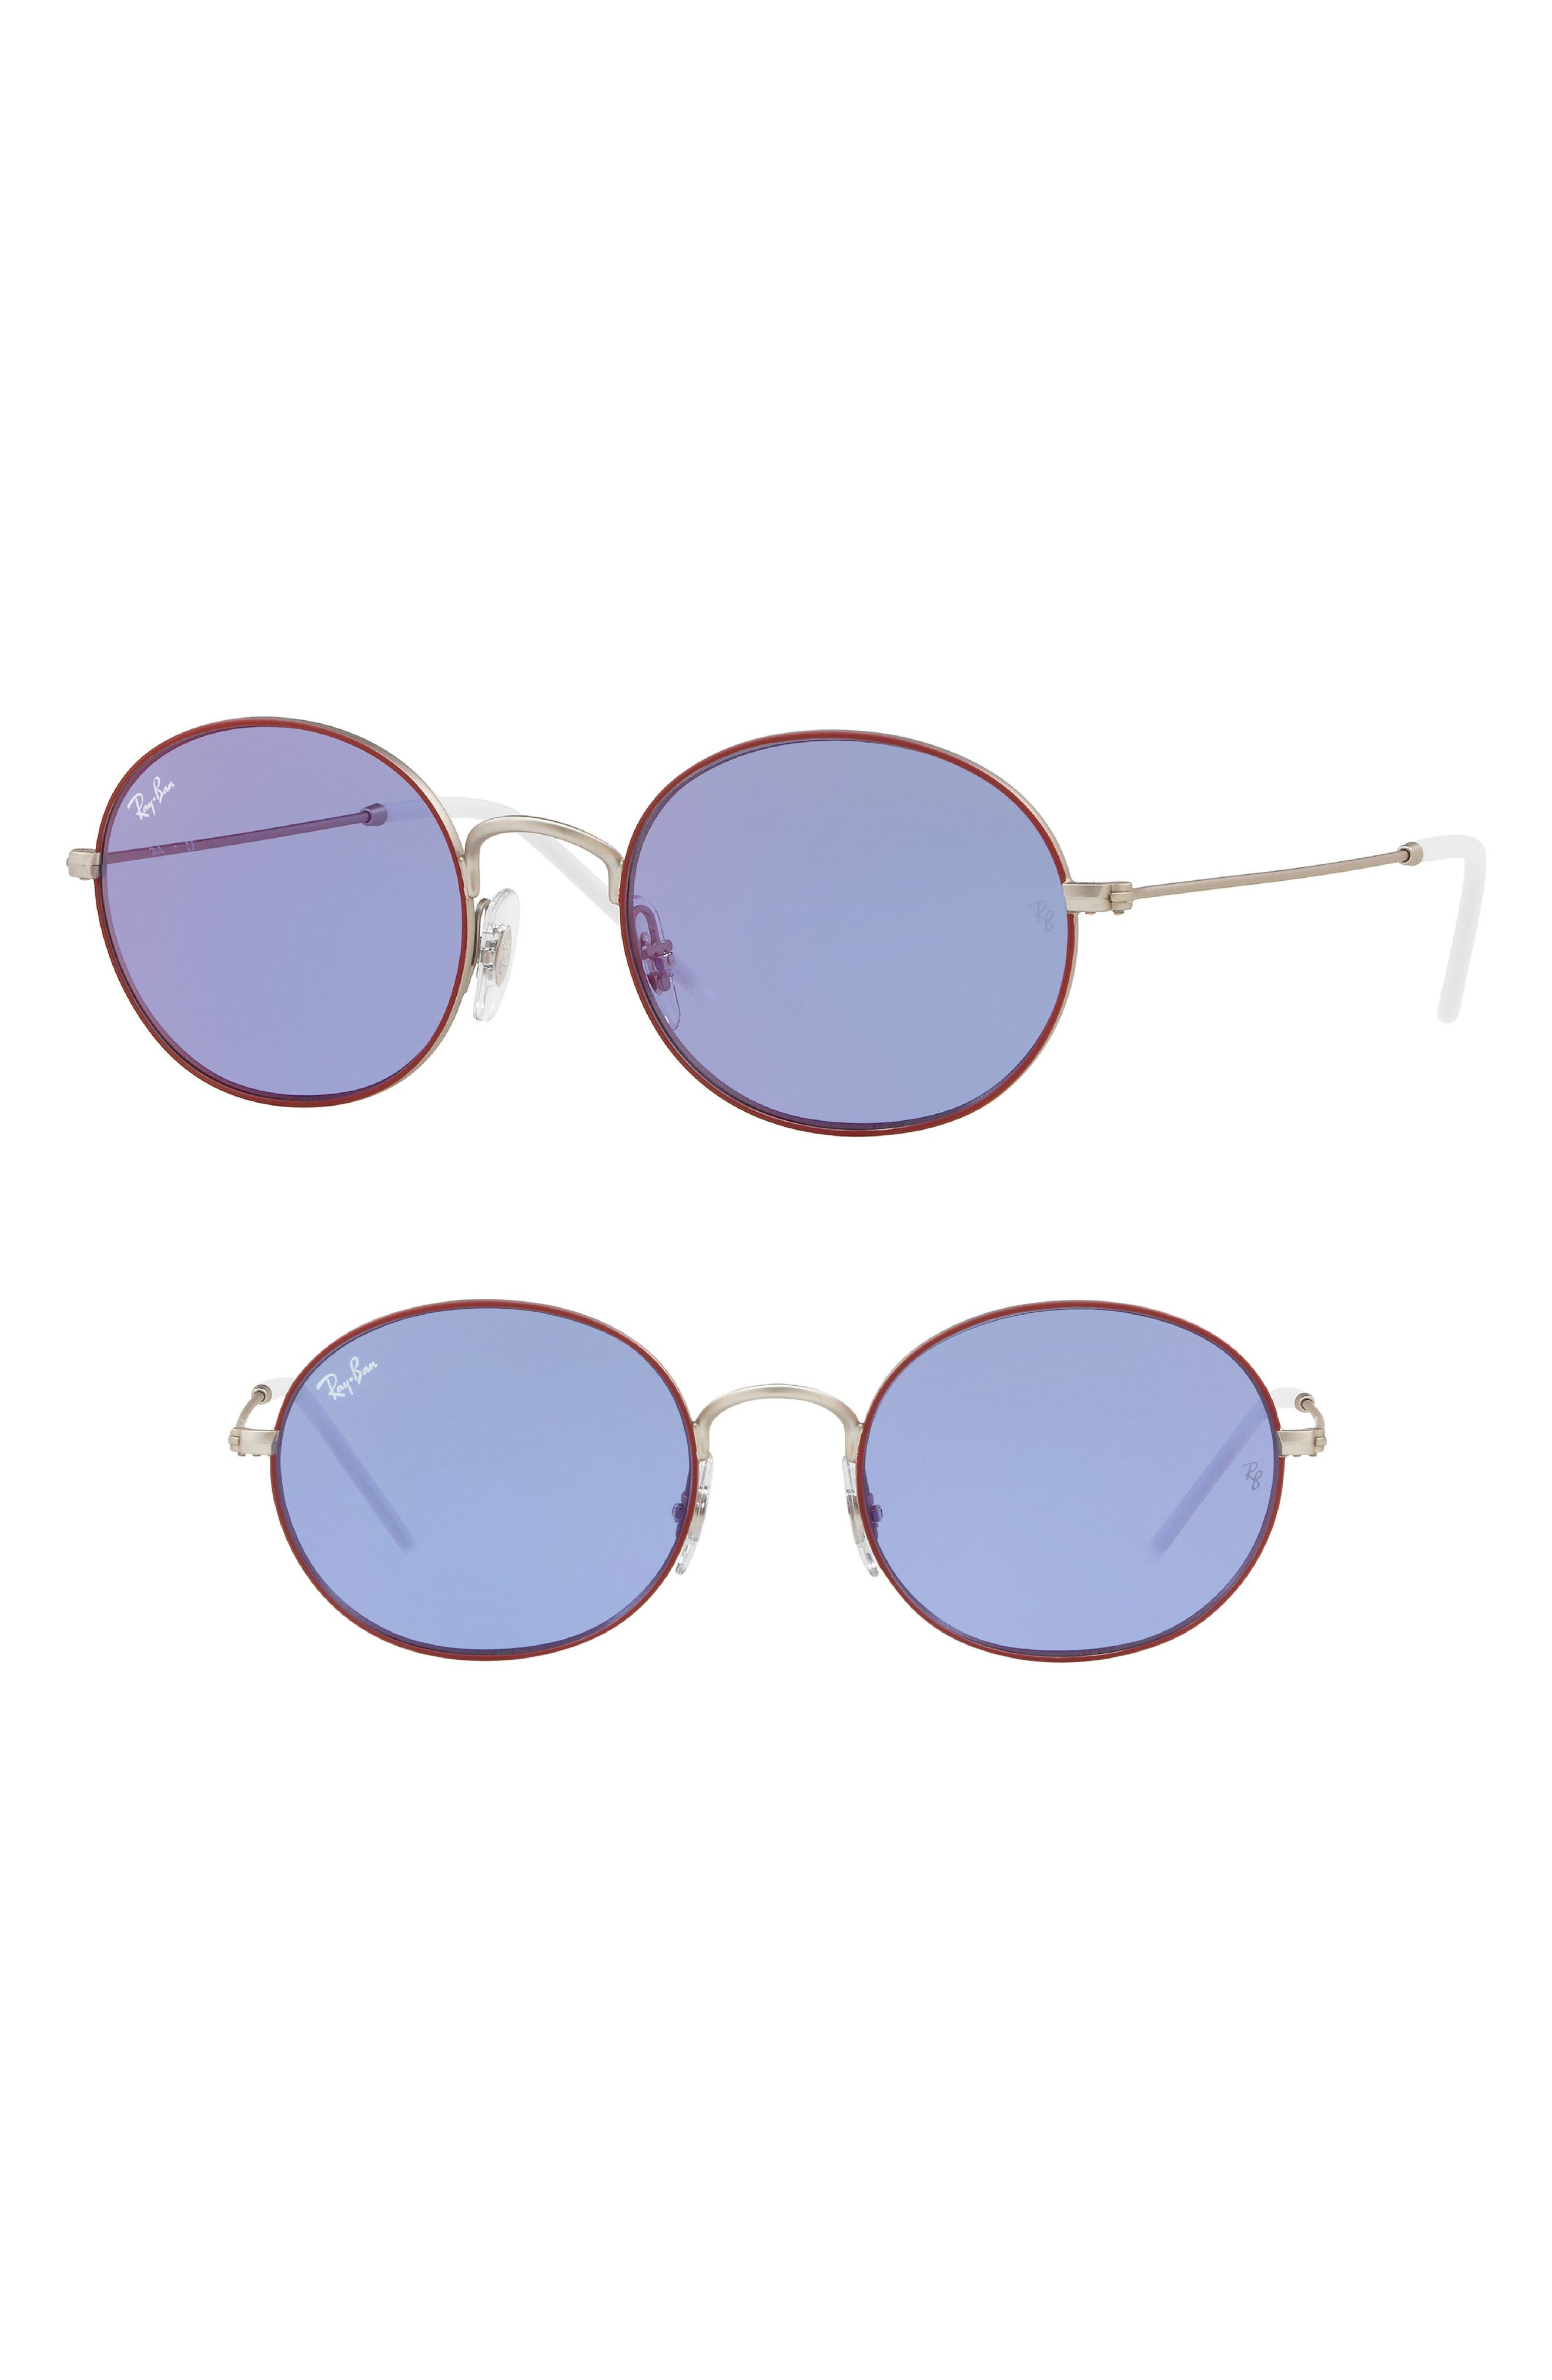 Youngster 53mm Oval Sunglasses,                         Main,                         color, Purple/ Red Mirror